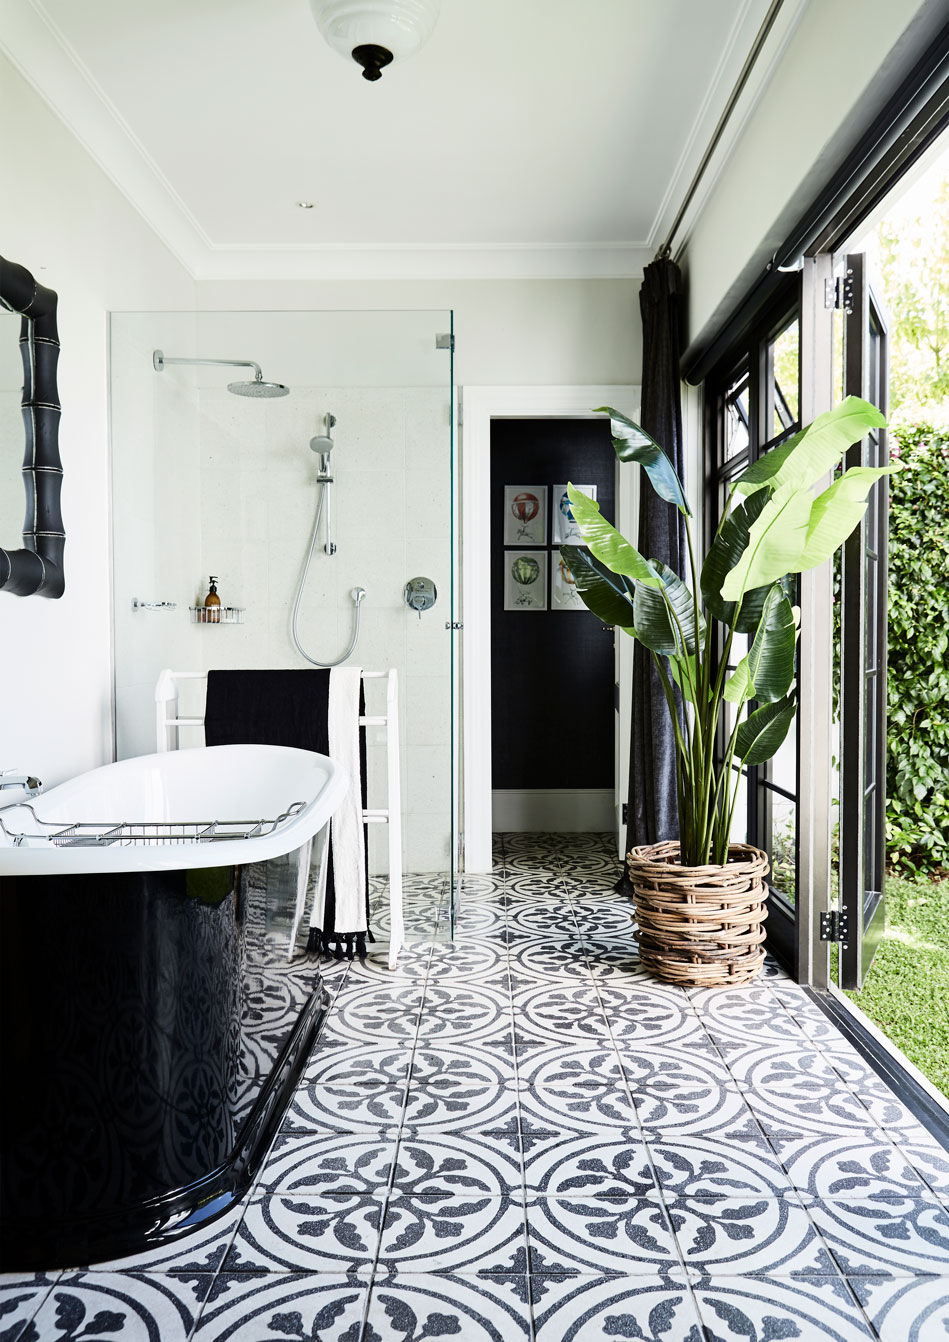 In the guest suite, the bathroom leads out onto a private courtyard.